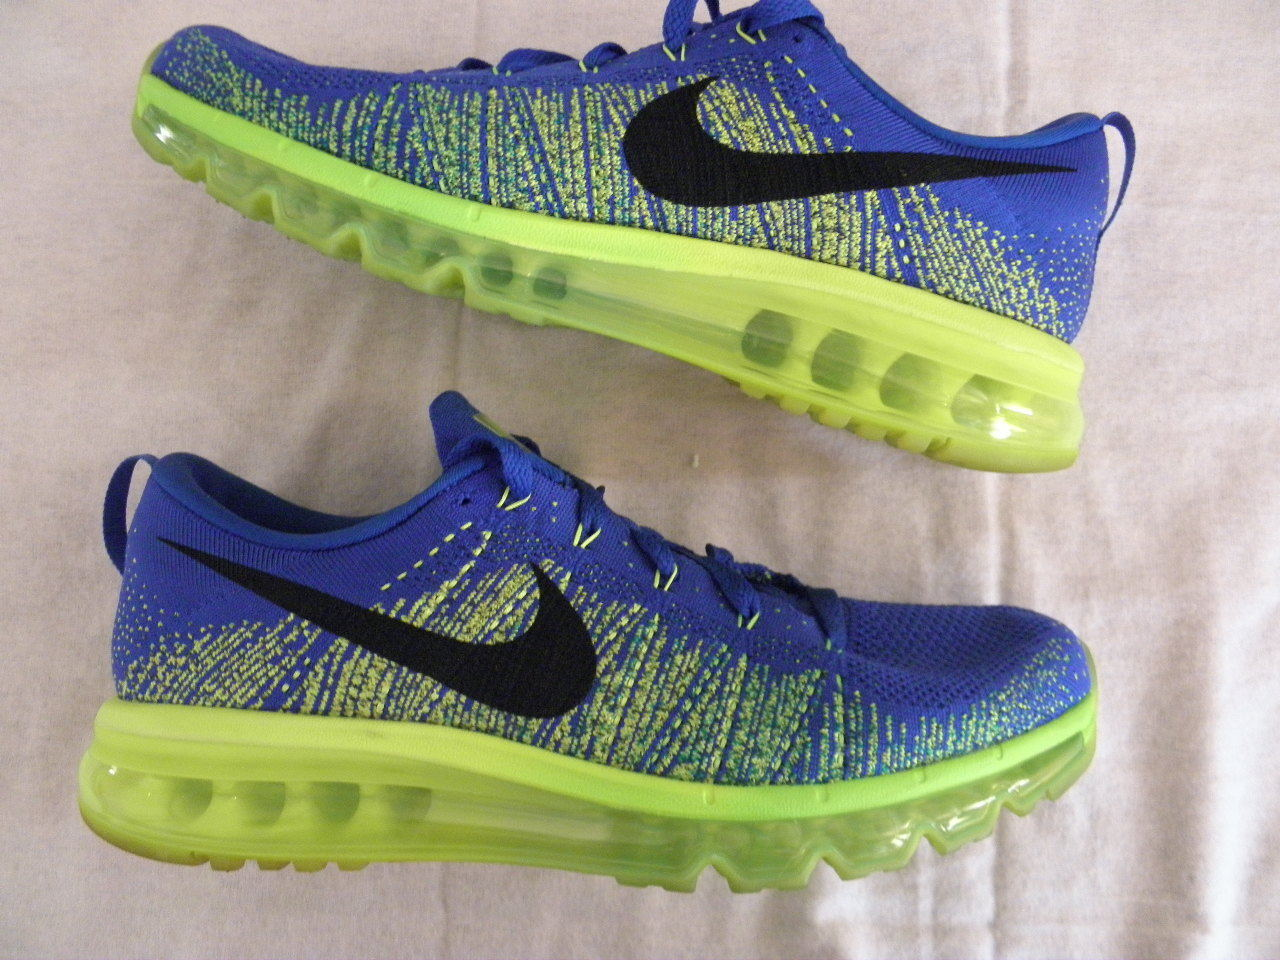 Nike Air Max Flyknit Max Air s 10.5 VNDS WORN ONCE blue green Sprite Fly Knit 2016 95 97 59bd7f